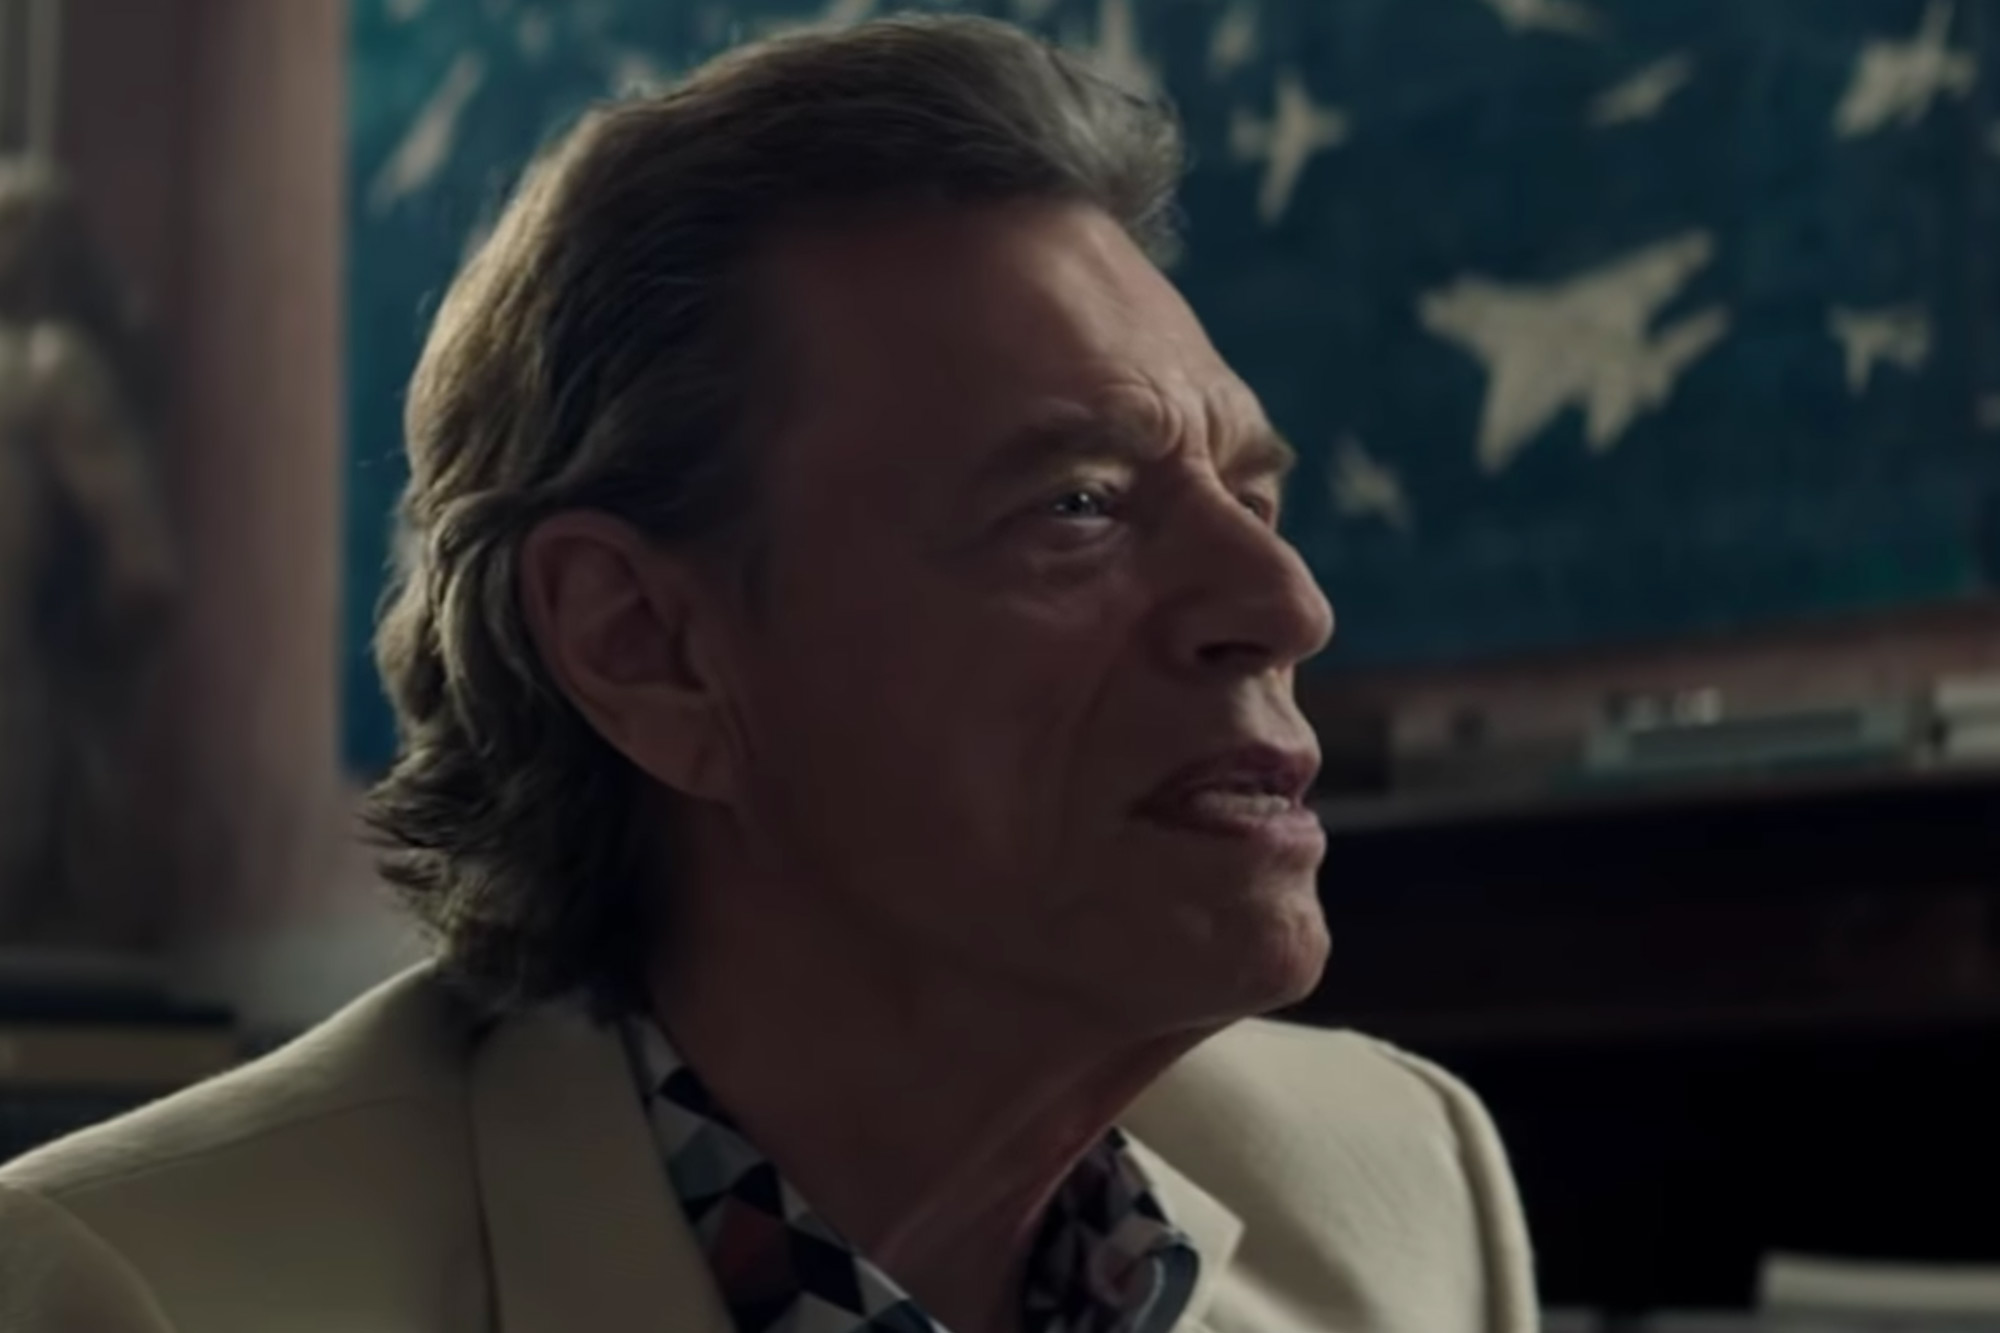 See Mick Jagger Portray Scheming Gallery Owner in 'Burnt Orange Heresy' Trailer